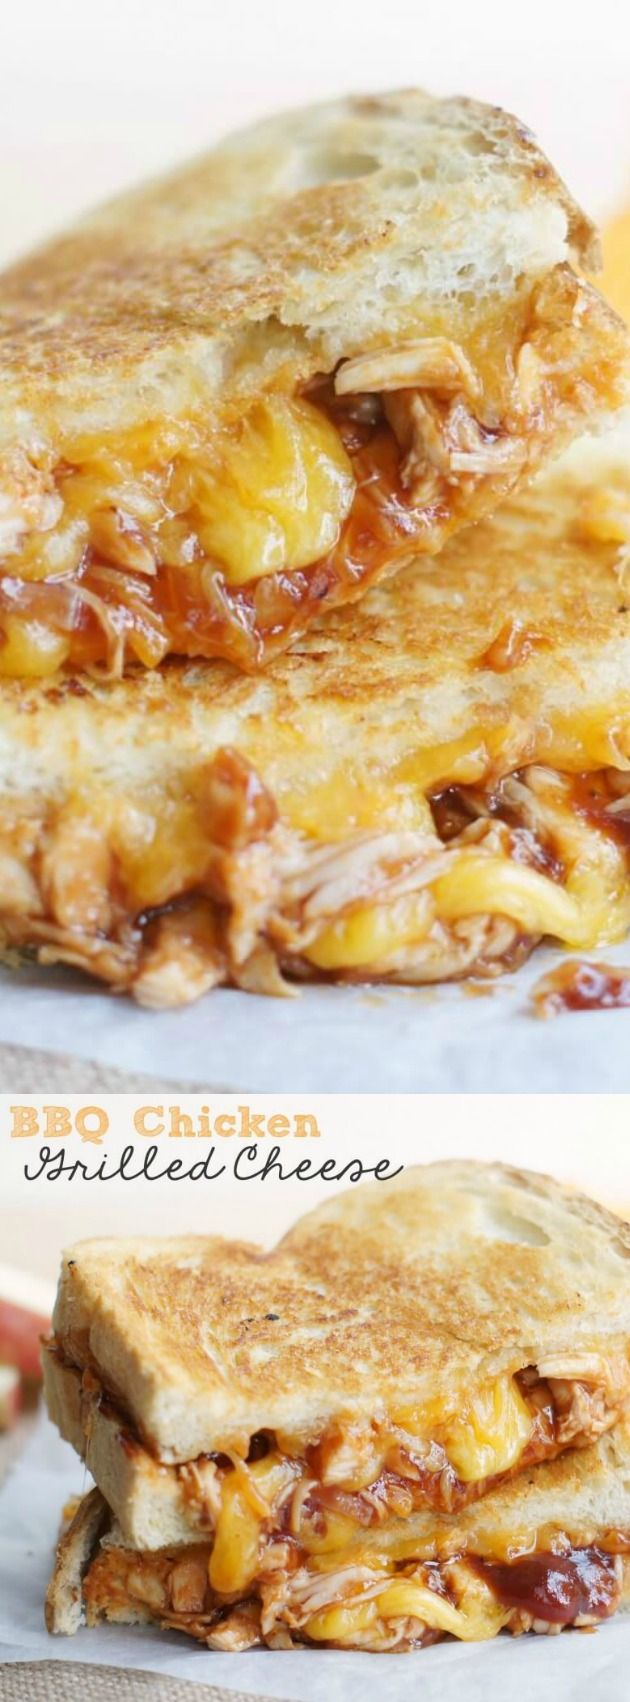 These BBQ Chicken Grilled Cheese Sandwiches from 5 Boys Baker are so simple to make, comforting, and crazy delicious! They make the perfect weeknight dinner when you don't have a ton of time to cook and still want to serve up something hot, melty, and delicious.